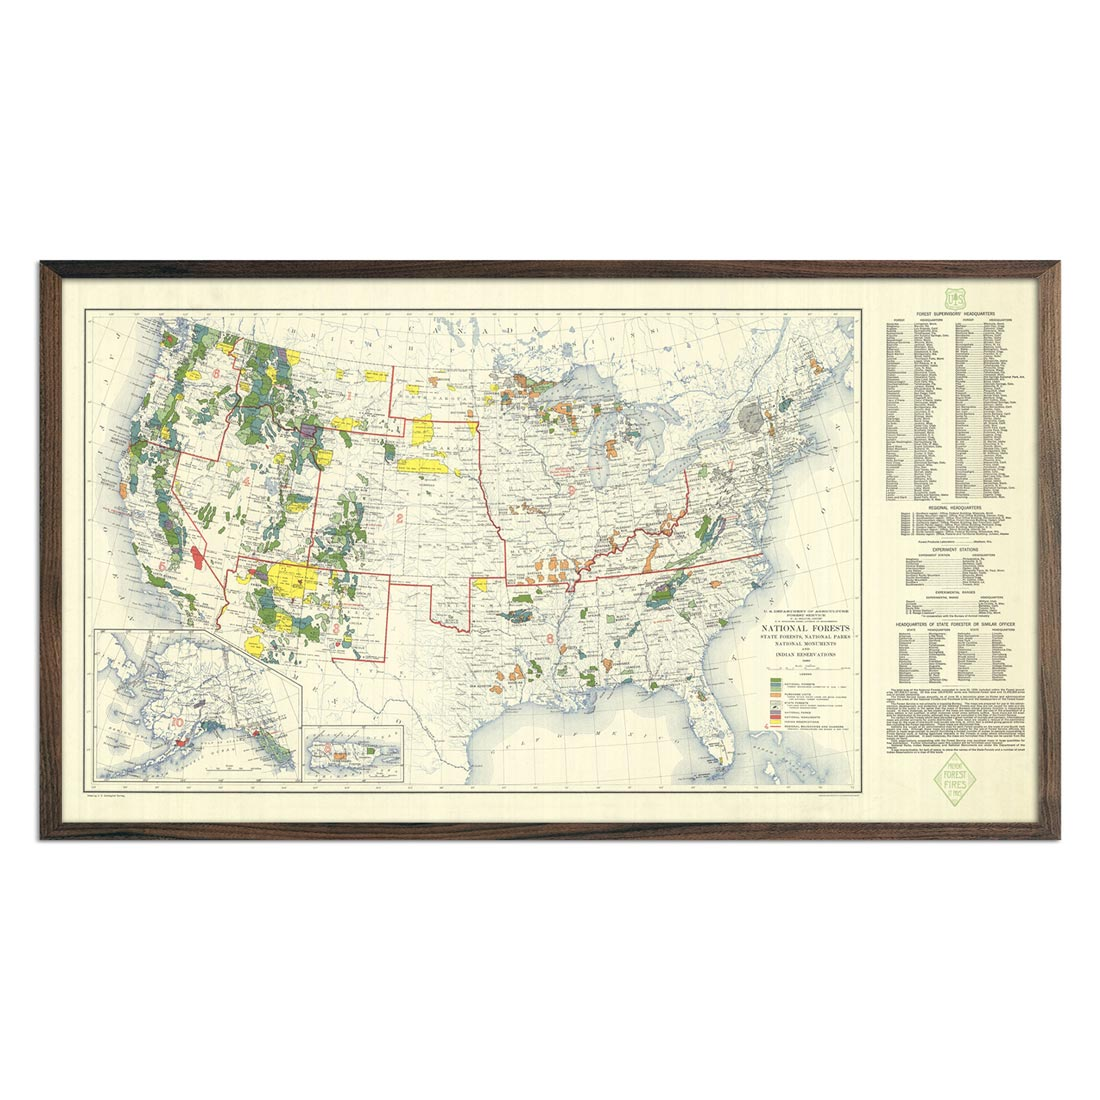 National Forests Map 1936